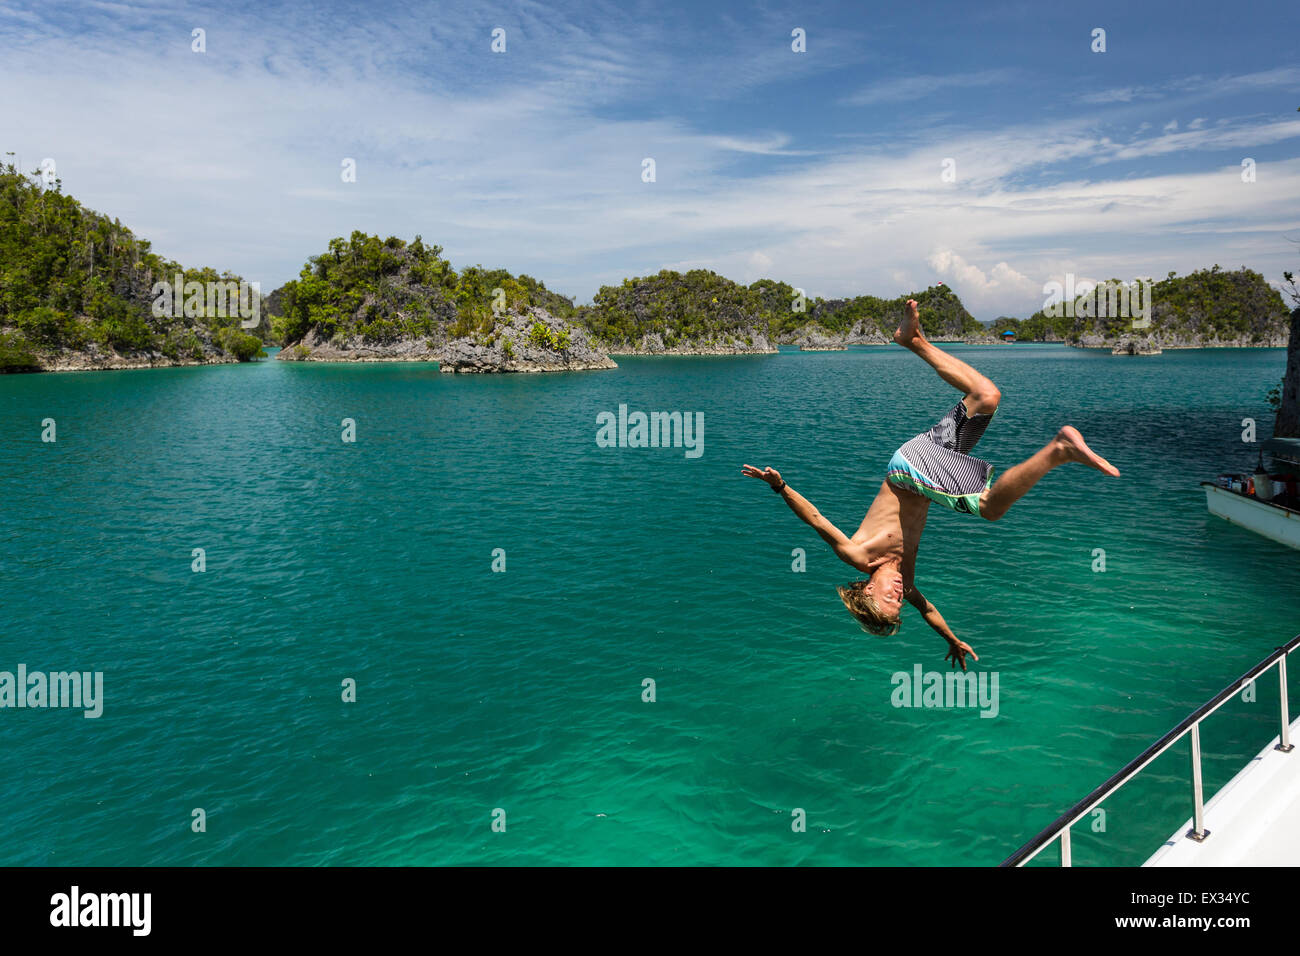 A young man does a flip off a boat in Raja Ampat's Fam Islands. - Stock Image